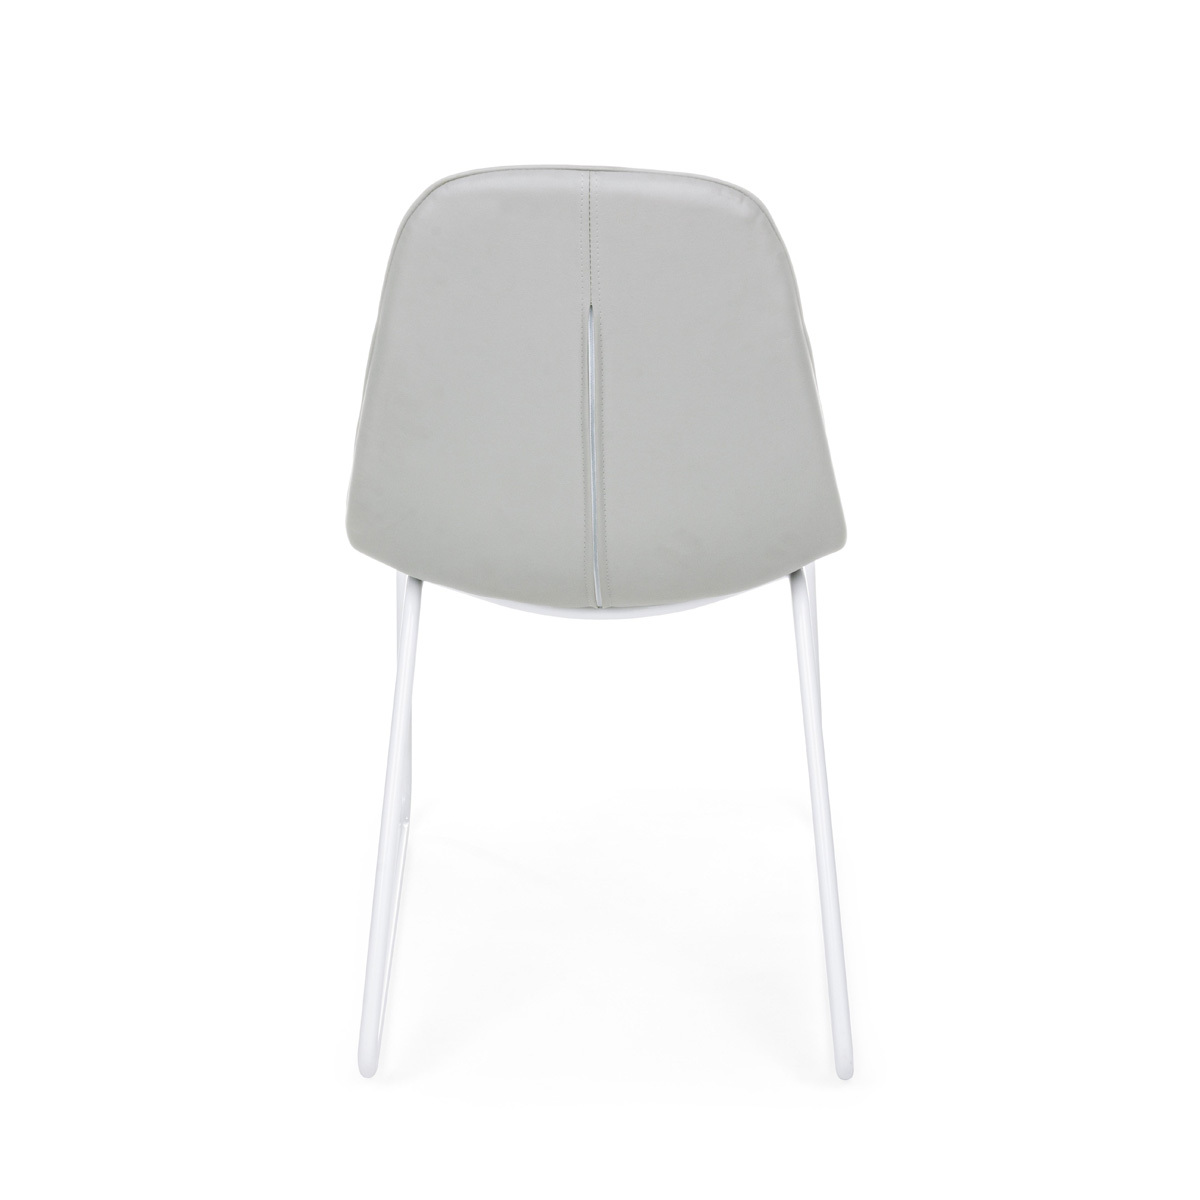 Photos 3: Bizzotto Chair in metal and eco-leather - corda 0731710